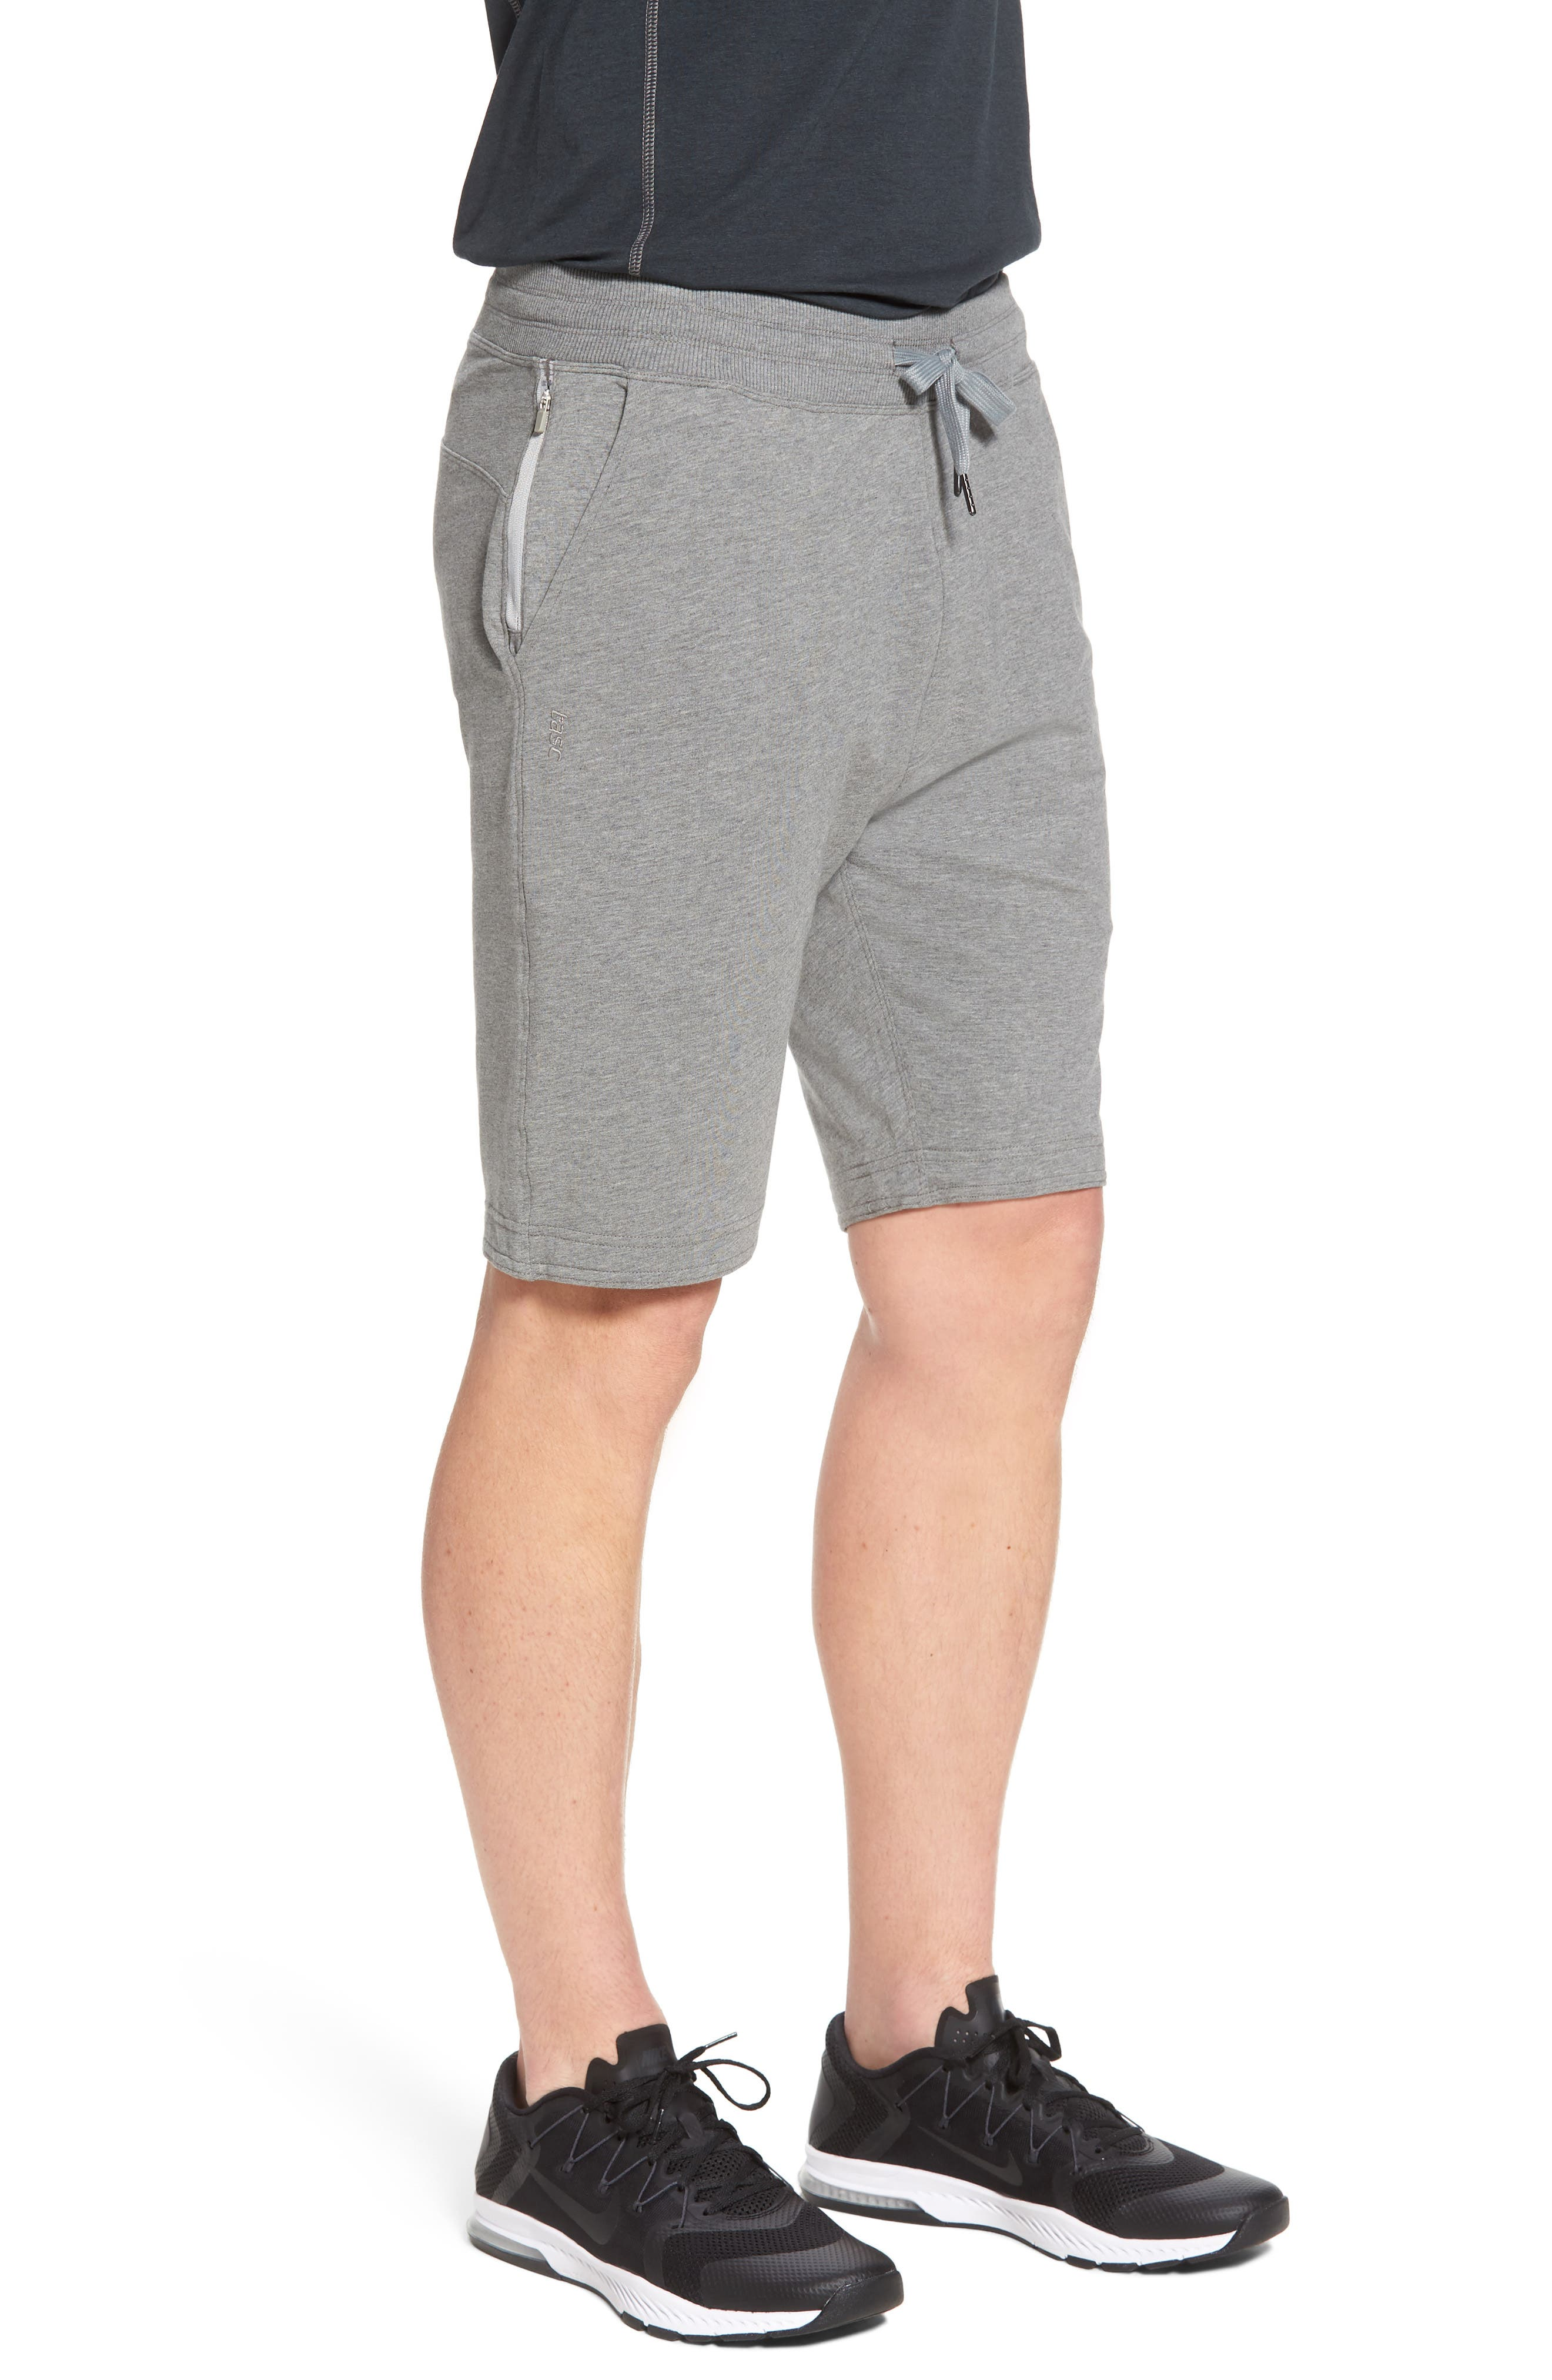 Legacy Lounge Shorts,                             Alternate thumbnail 3, color,                             Heather Grey